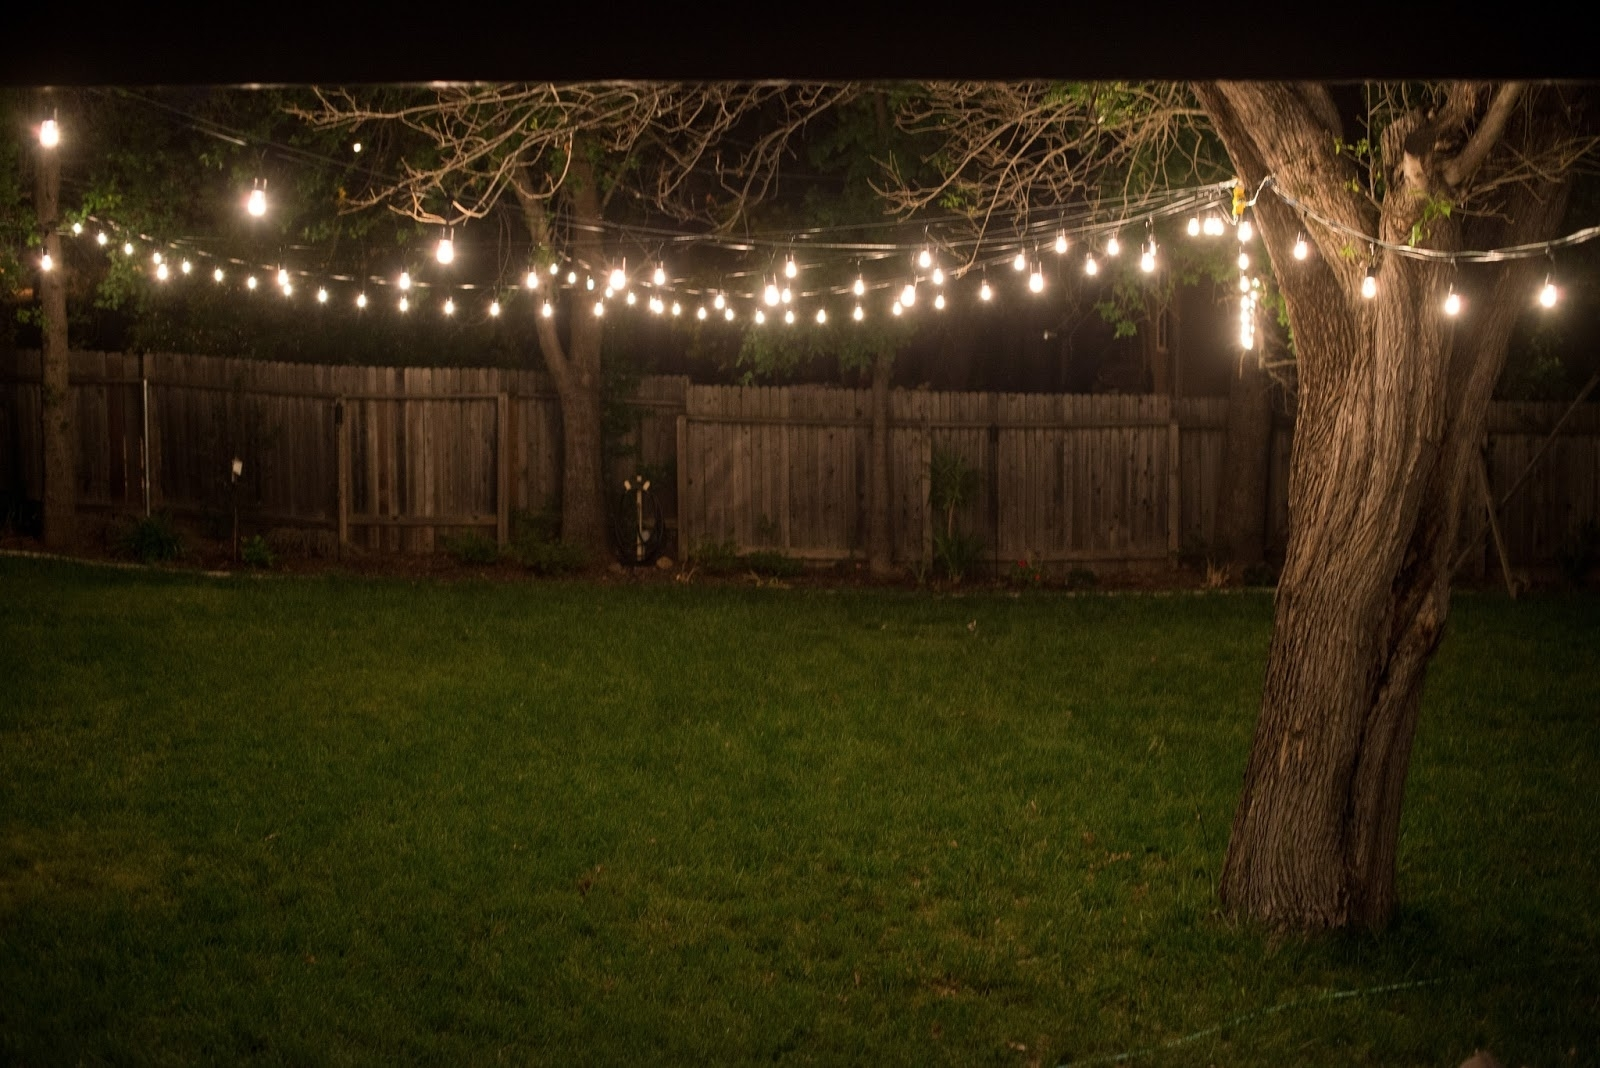 Outdoor Hanging Wall Lights With Regard To Most Up To Date Hanging String Lights Outdoors Amazing Patio Bright July Diy Outdoor (View 20 of 20)